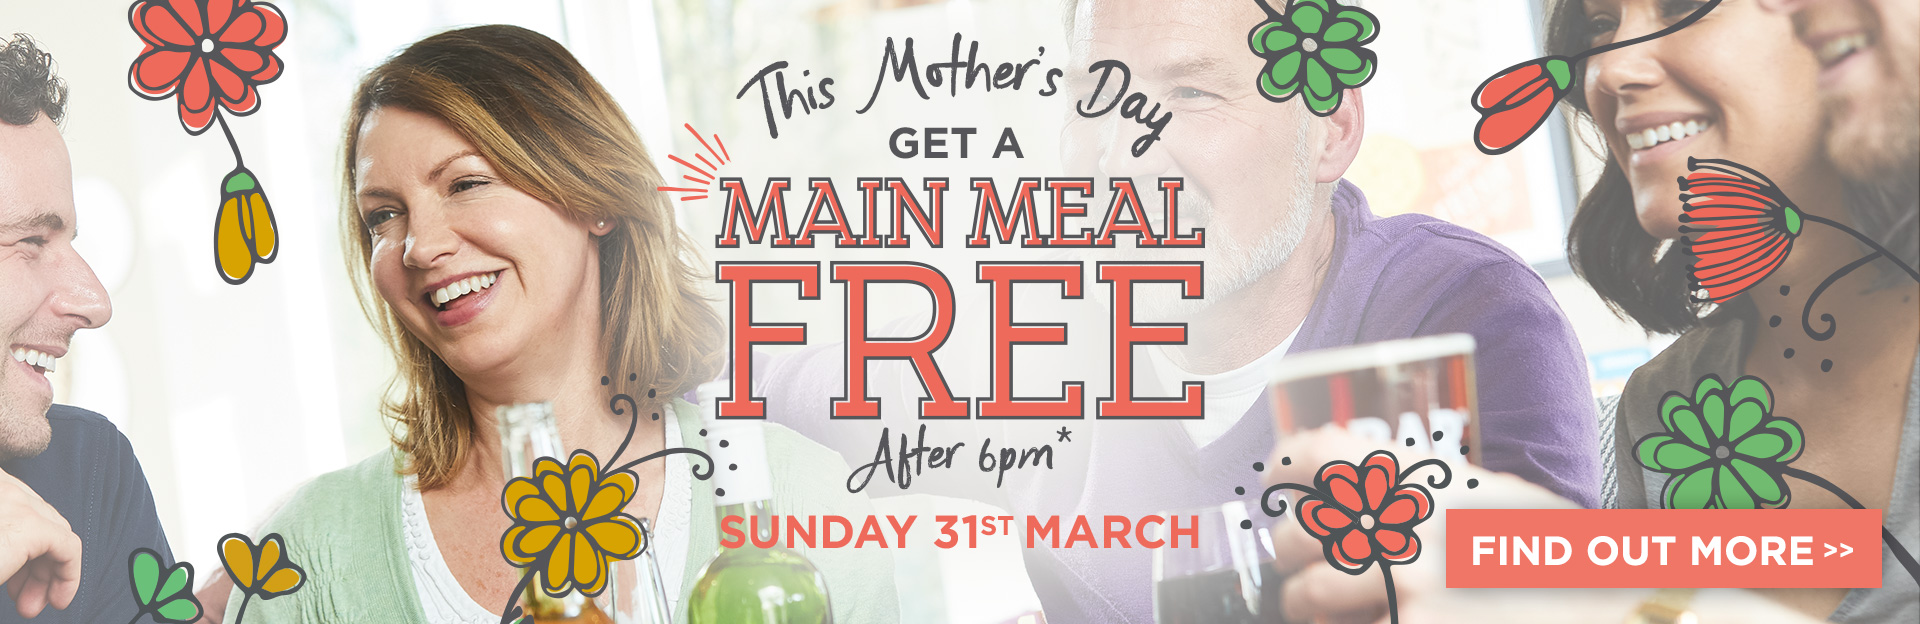 Mother's Day at The Shepherds